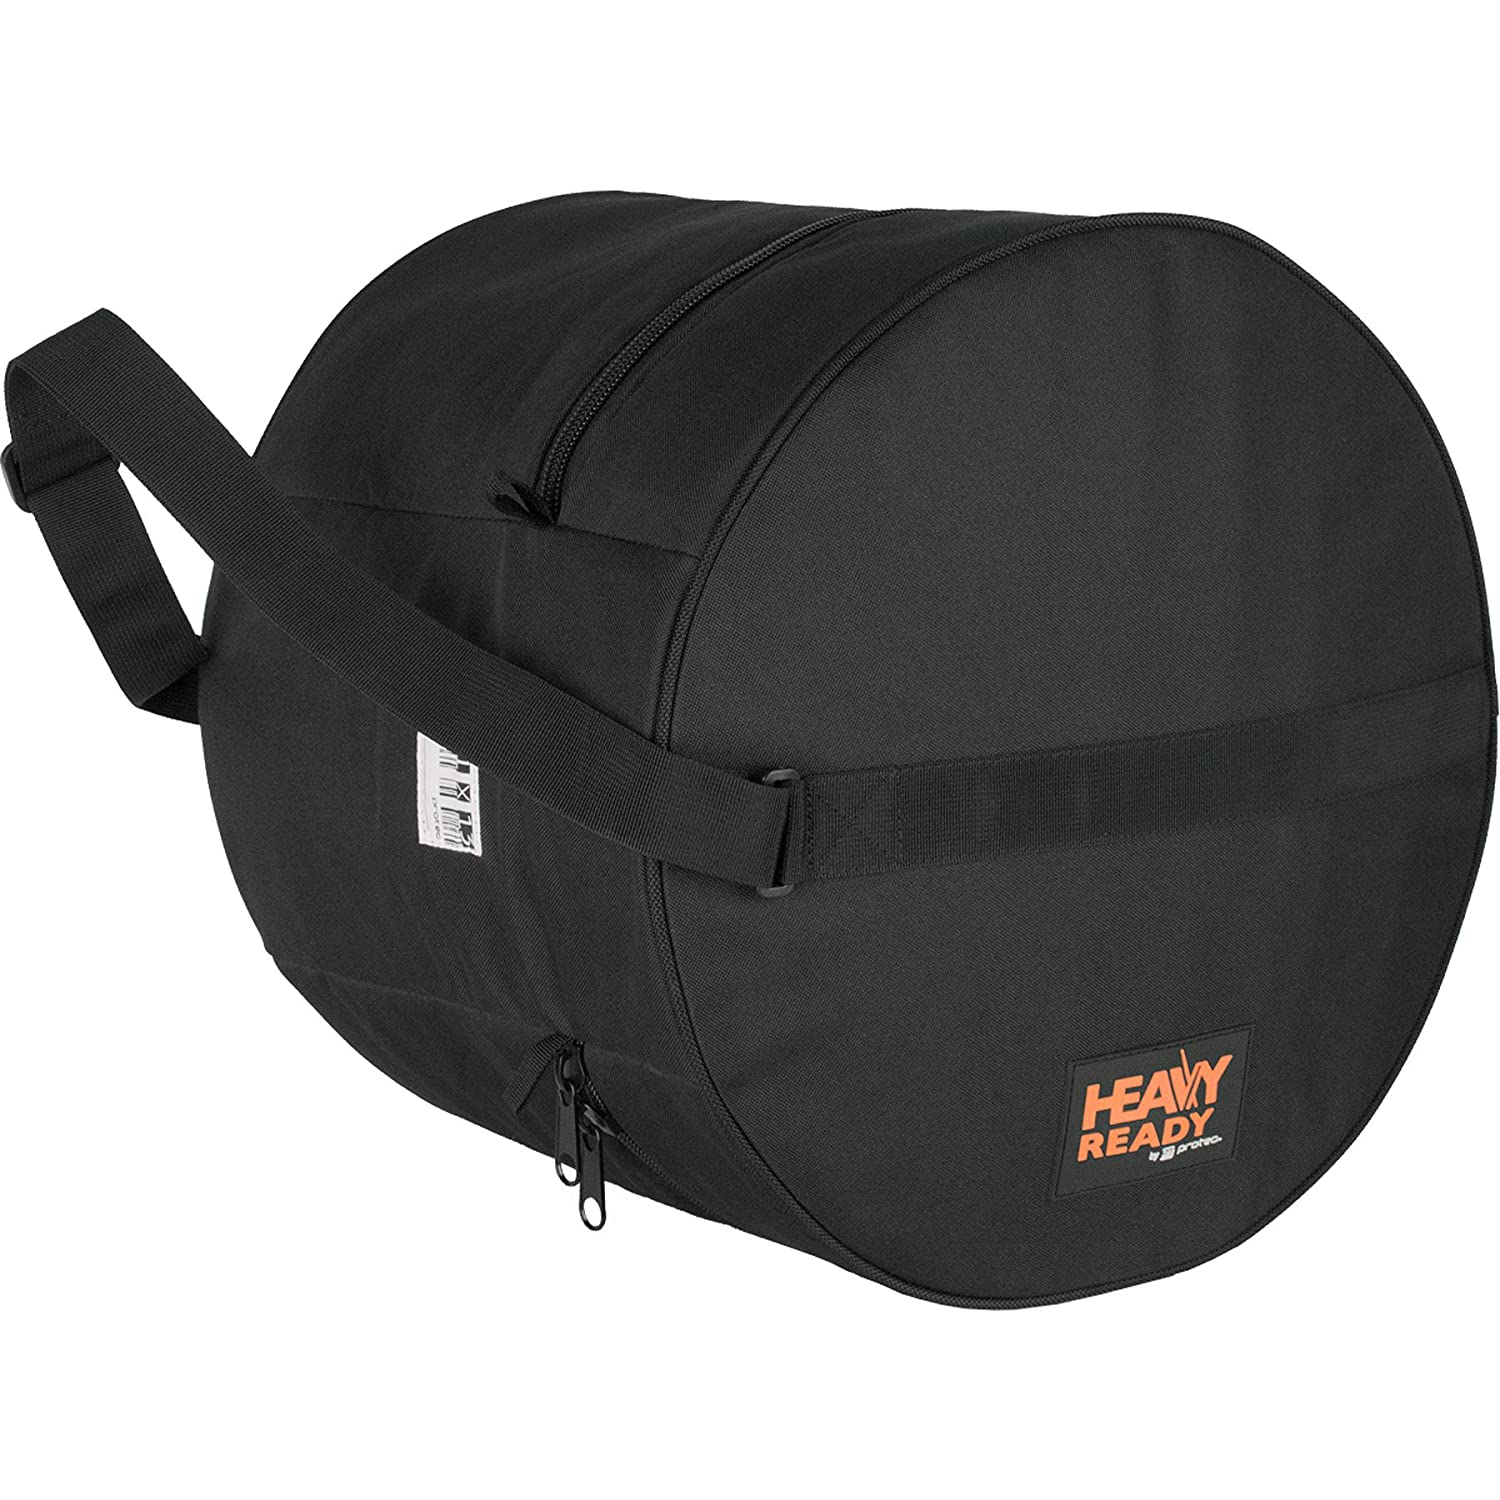 "Heavy Ready 6.5 x 14"" (Height x Diameter) Padded Snare Bag by Protec, Model HR6514 Pro Tec"